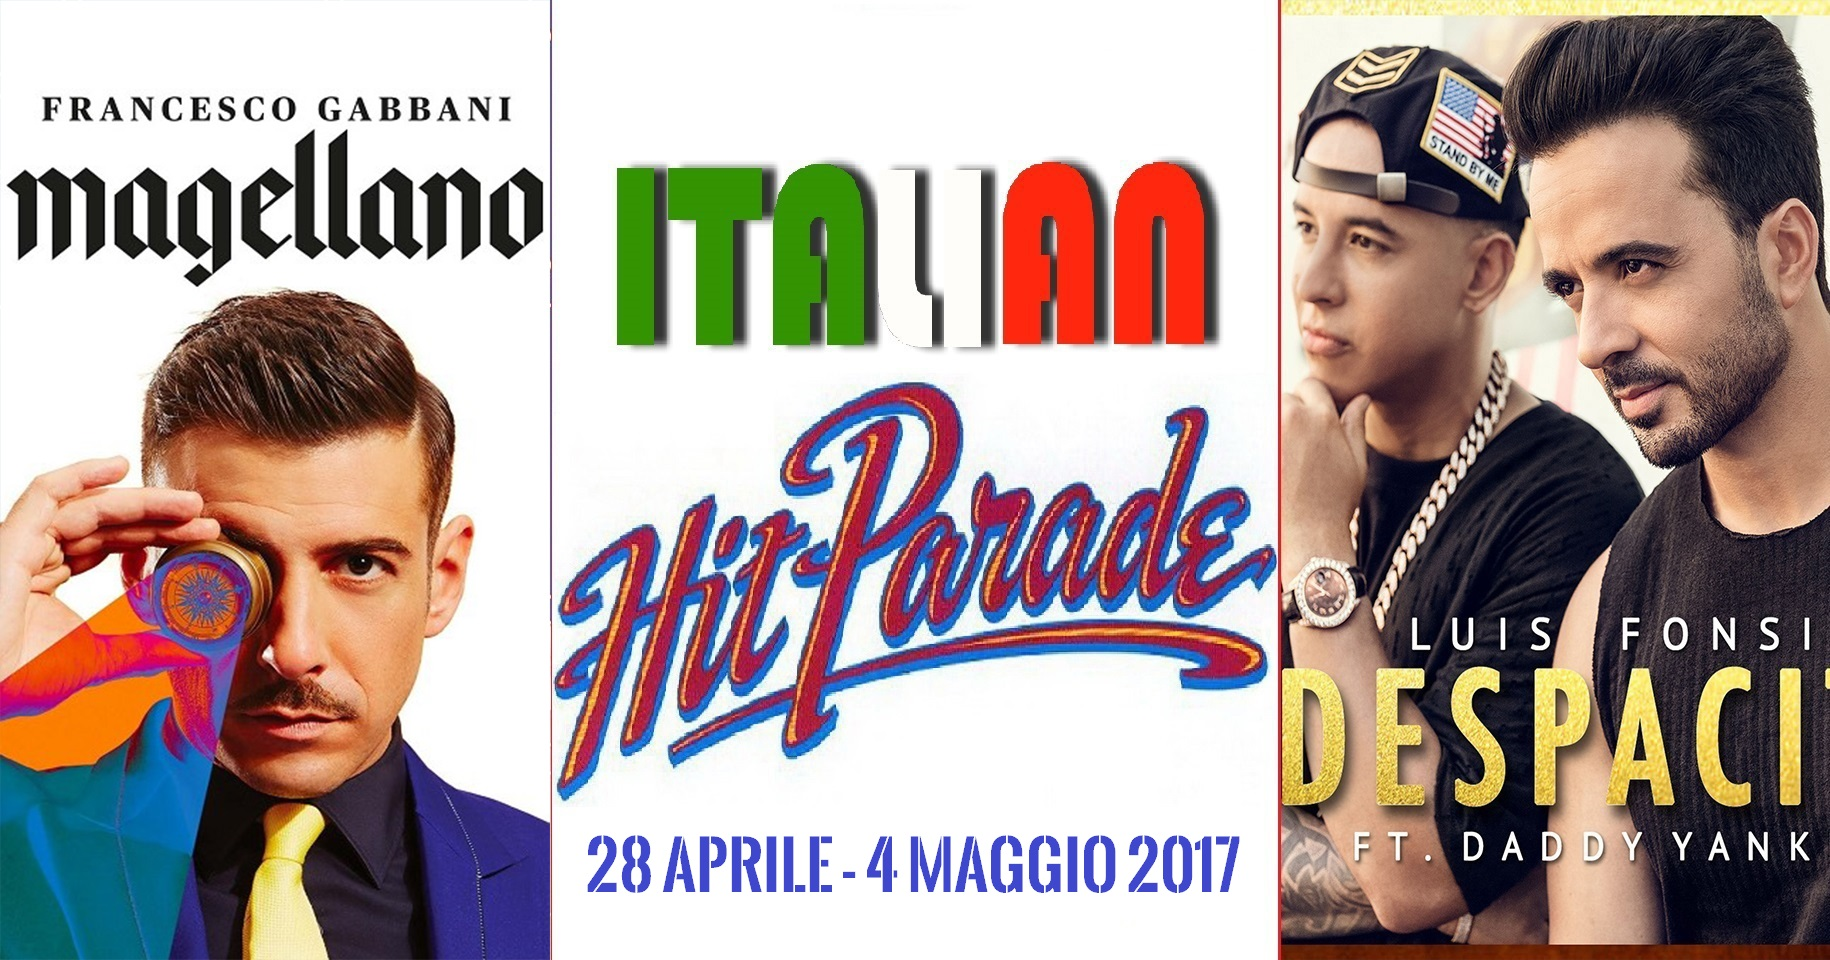 IHP 05-05-17 Francesco Gabbani batte Francesco Renga